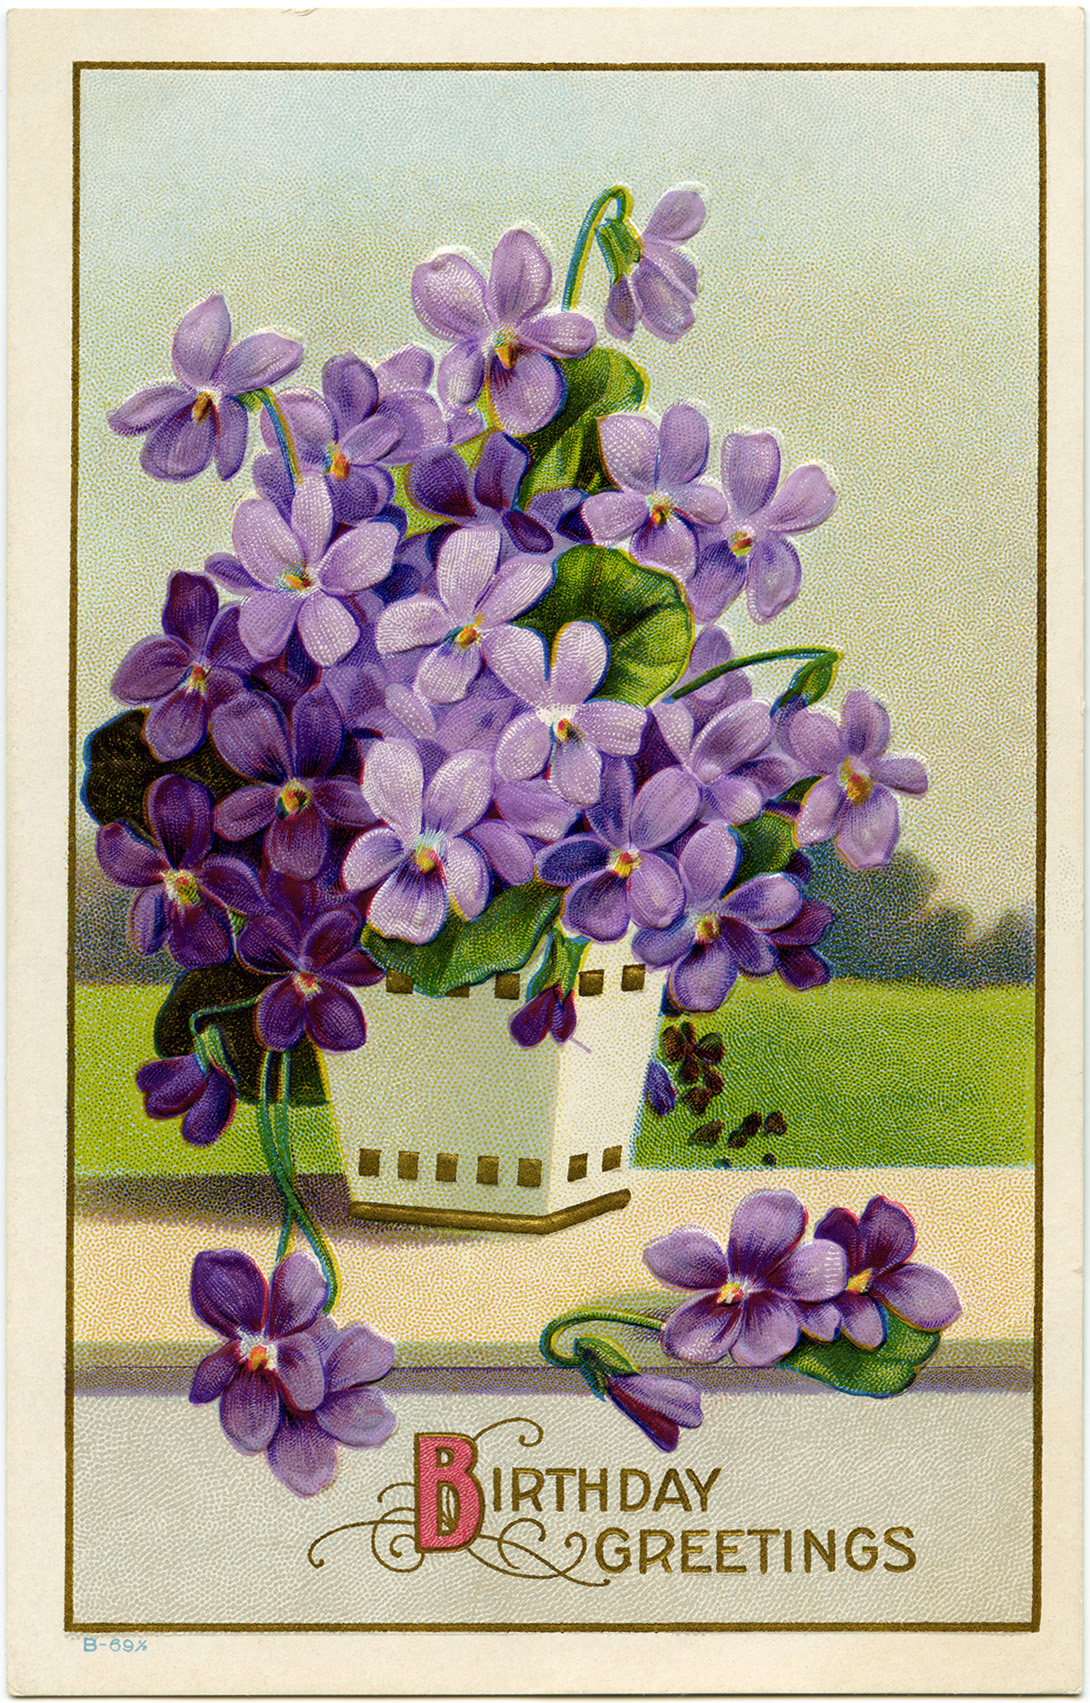 Victorian postcard graphics, vintage birthday postcard, purple flower clip art, old fashioned birthday card, vintage flower illustration